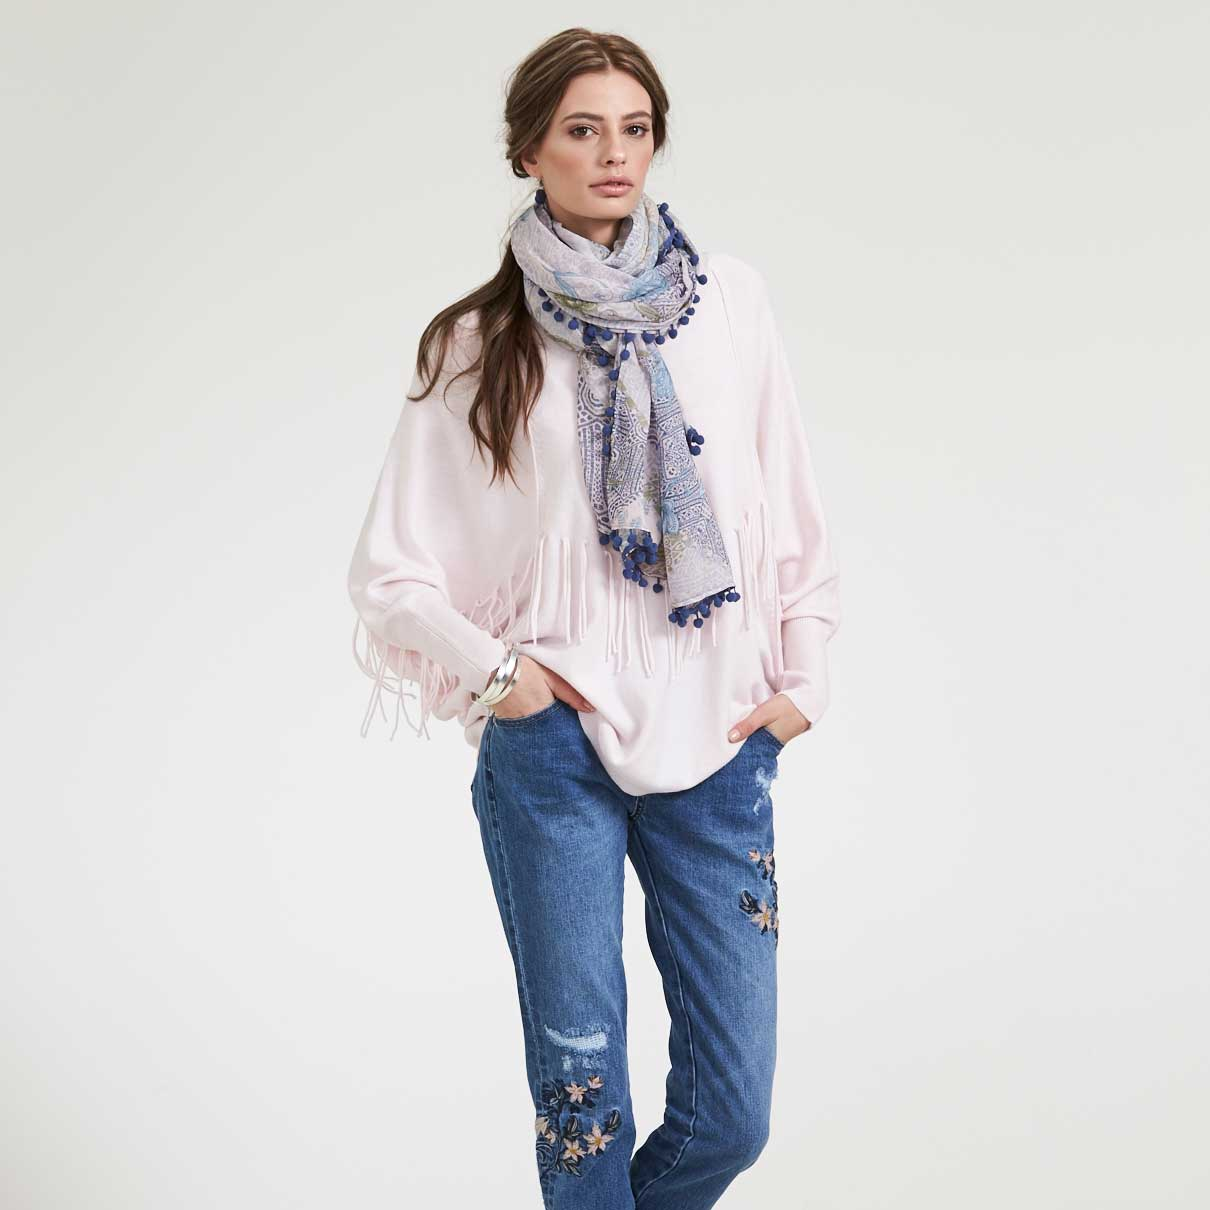 Loobies Story Storm Sweater LS1288 Adorn Jean Snowstorm Scarf